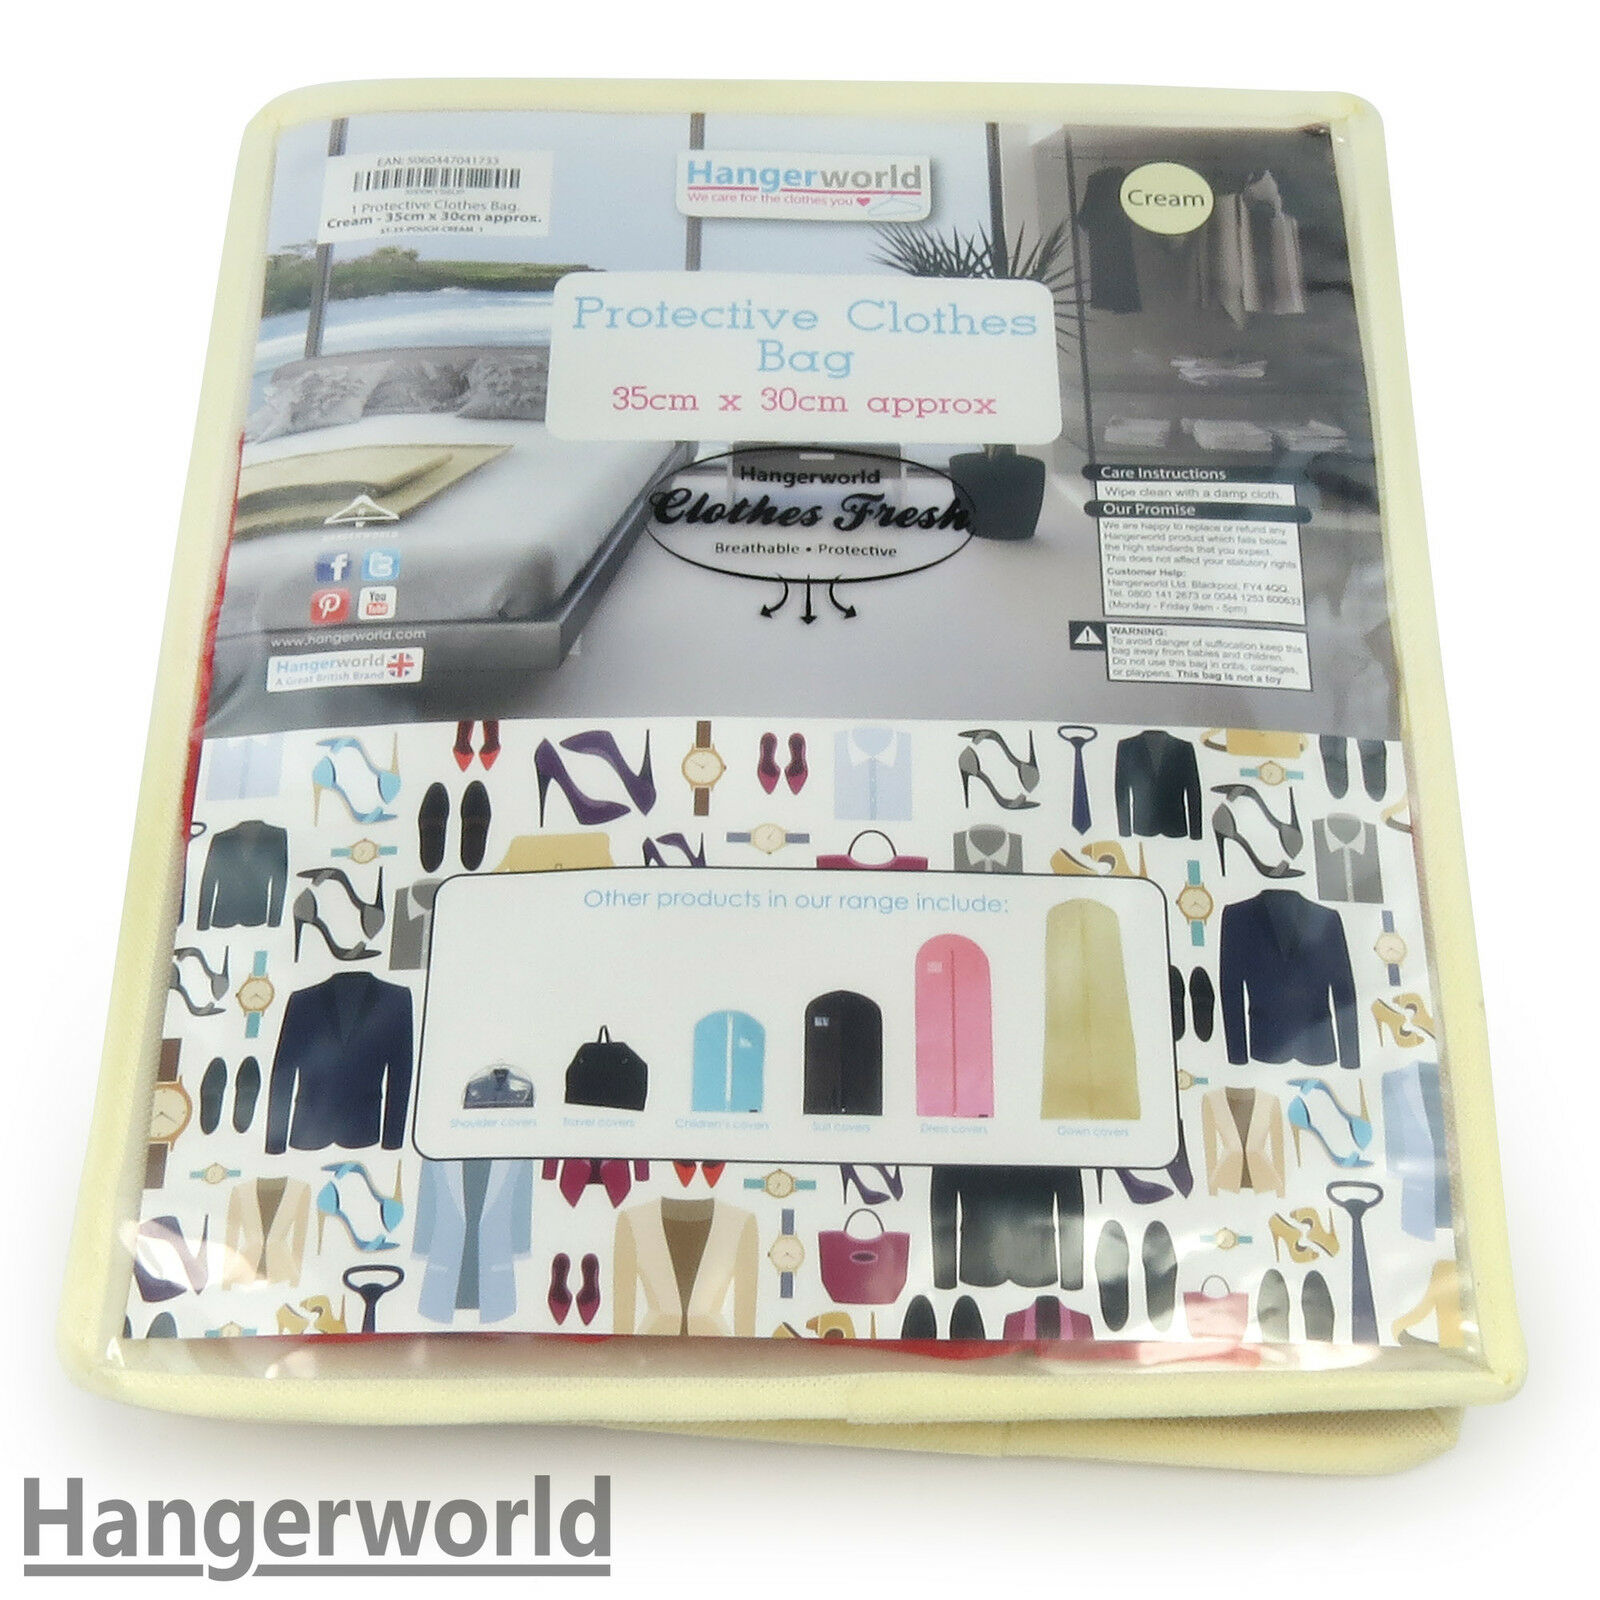 HANGERWORLD 5 Cream Breathable Cashmere Jumper Clothing Storage Pouch Bag with Clear Front